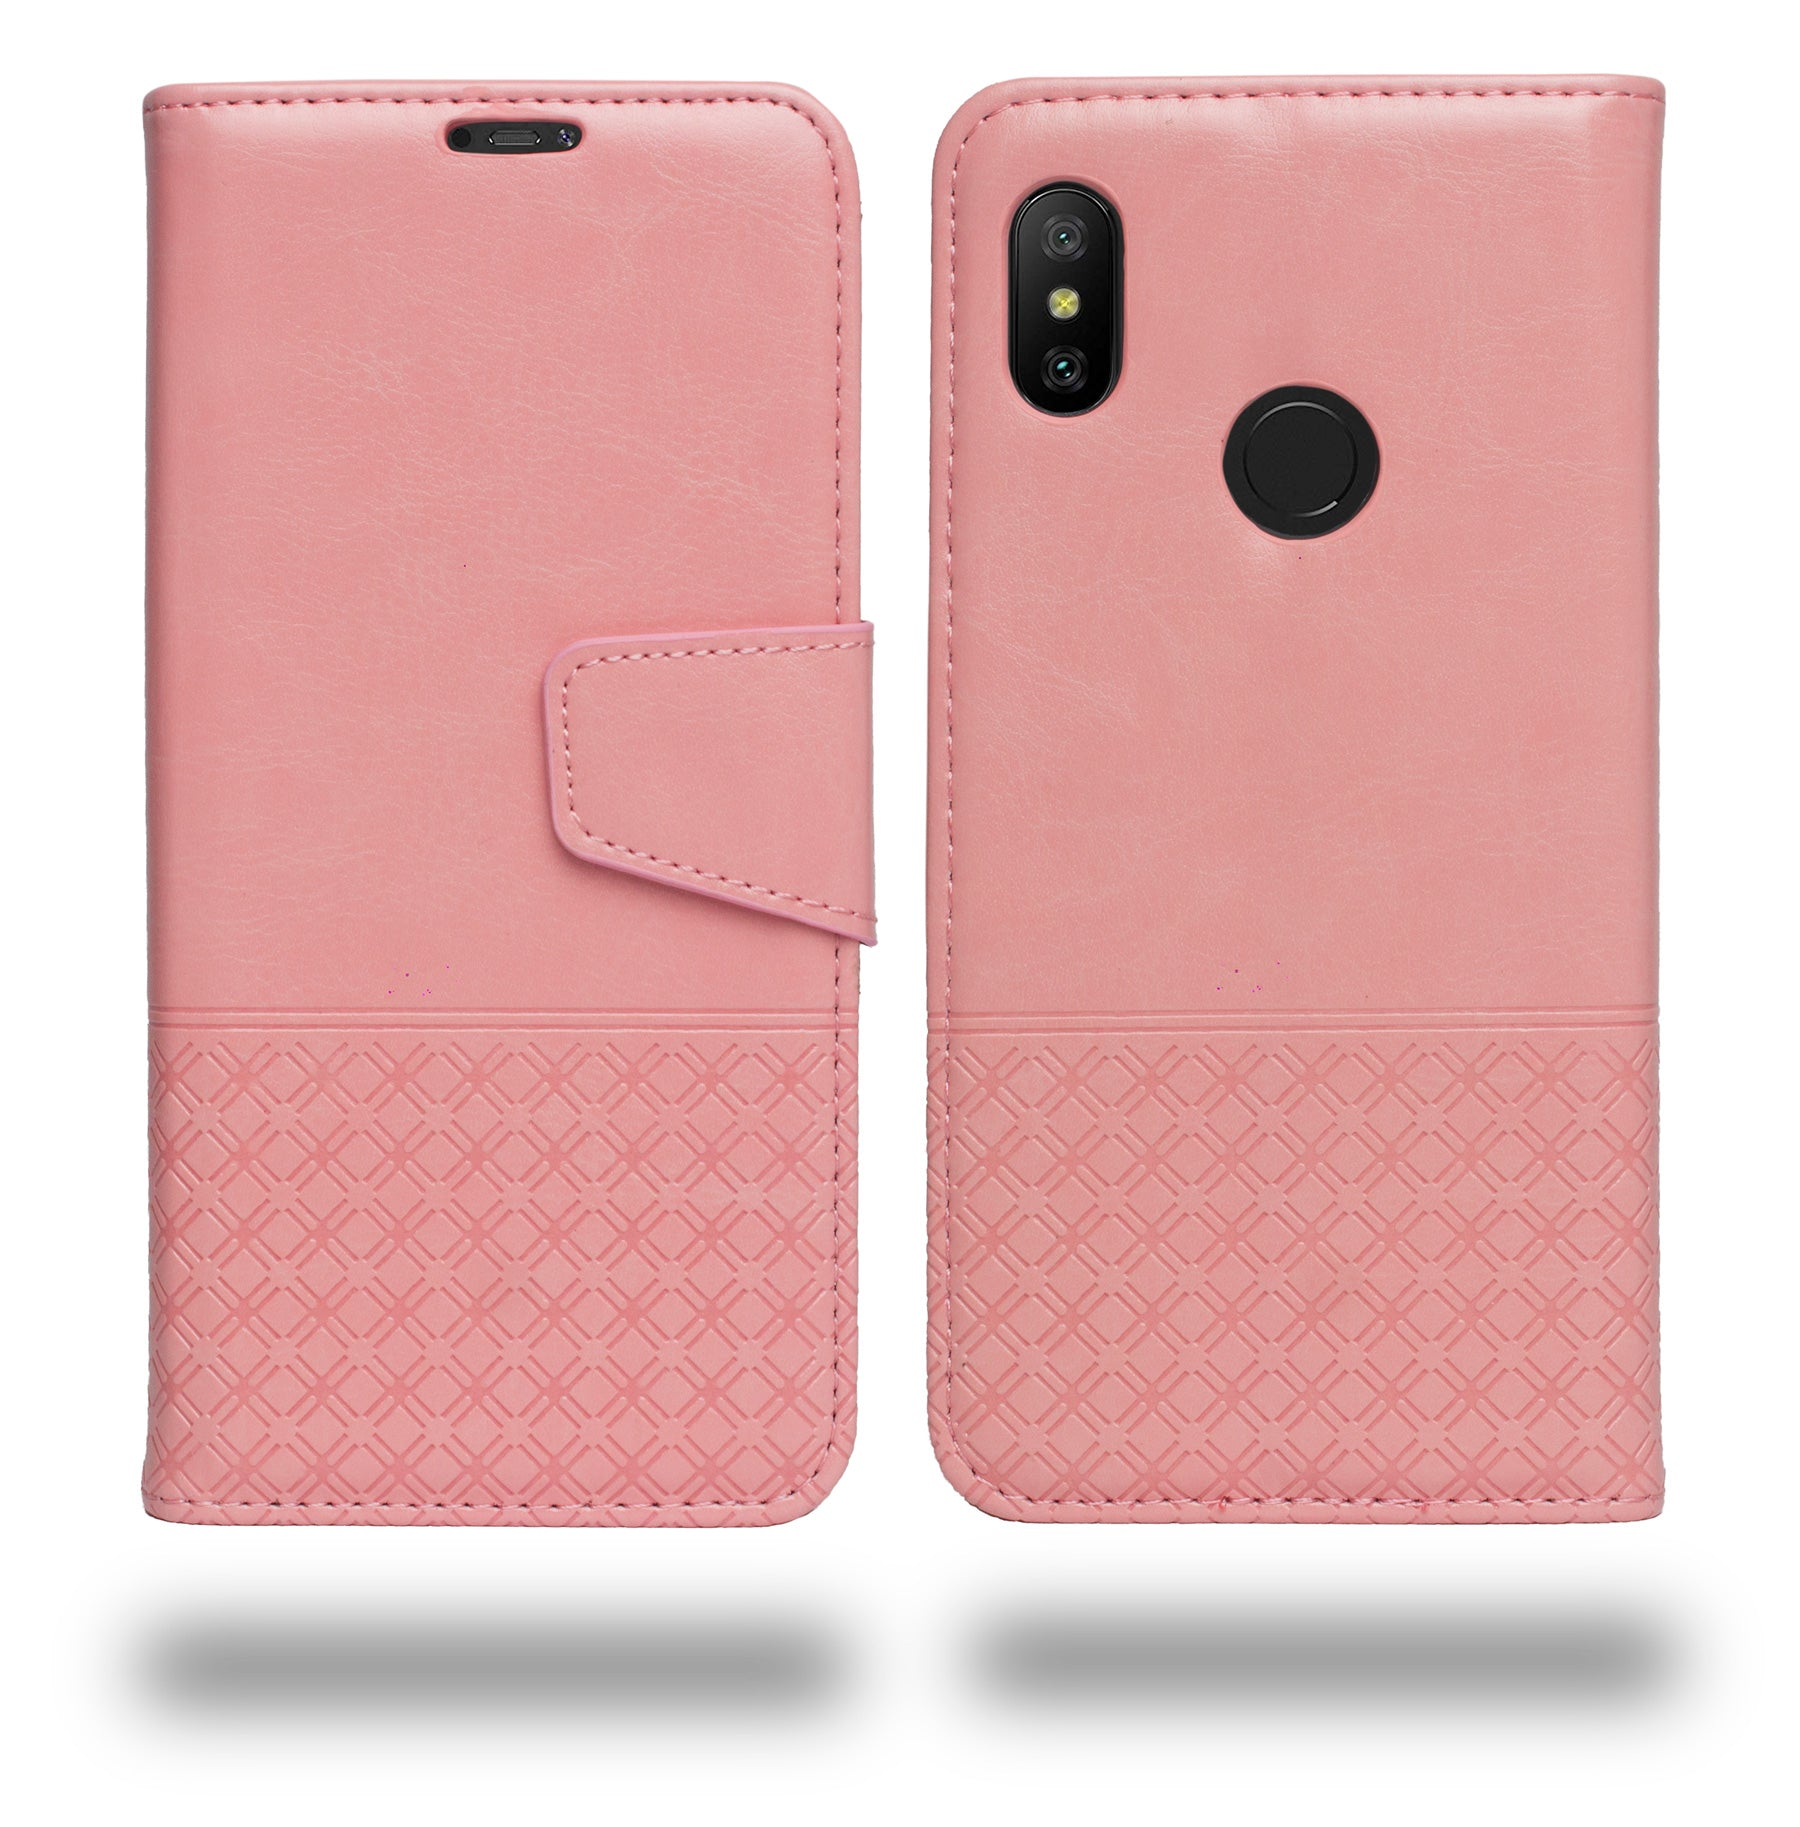 Ceego Luxuria Compact Wallet Flip Cover for Xiaomi Redmi Note 6 Pro (Carnation Pink)